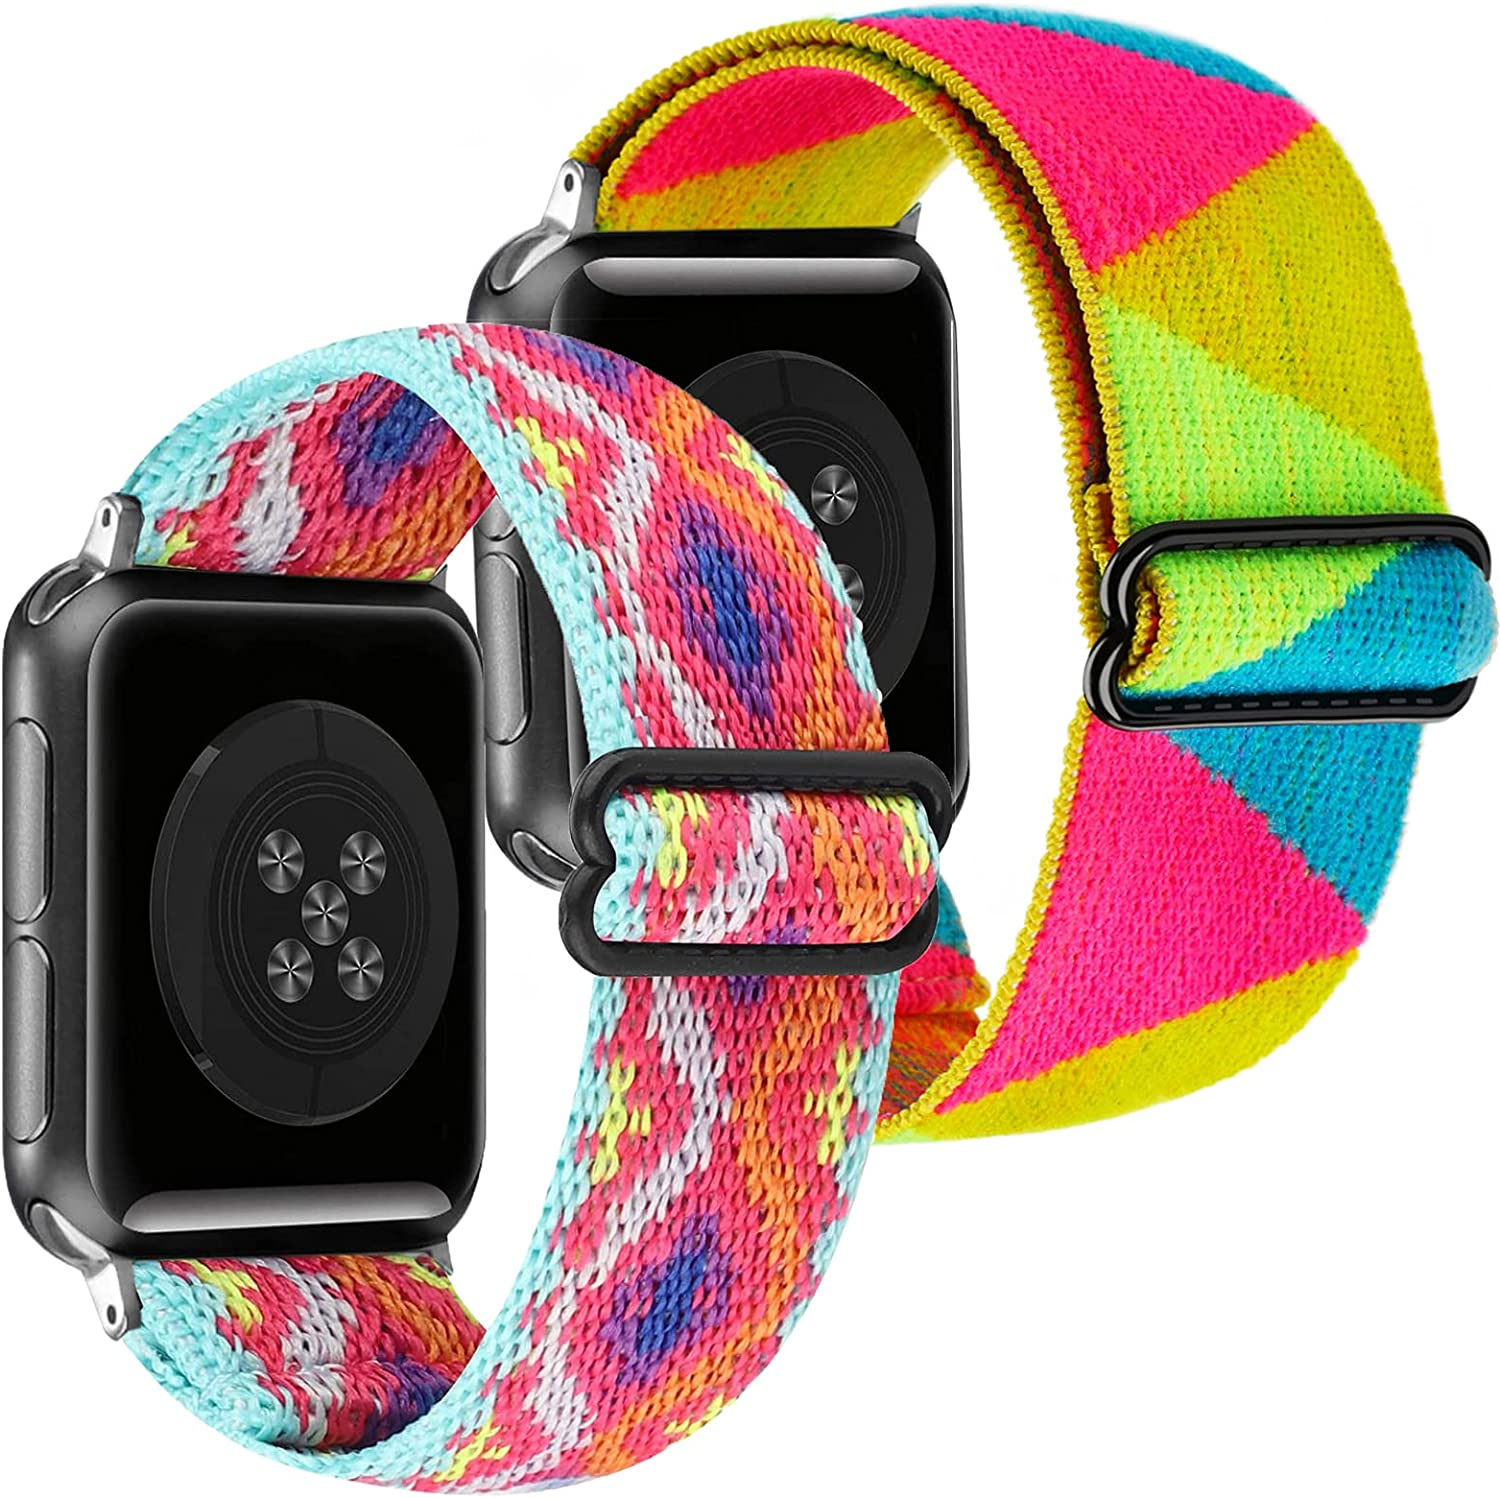 Stretchy Nylon Solo Loop Bands Compatible with Apple Watch 38mm 40mm, Adjustable Stretch Braided Sport Elastics Women Men Strap Compatible with iWatch Series 6/5/4/3/2/1 SE